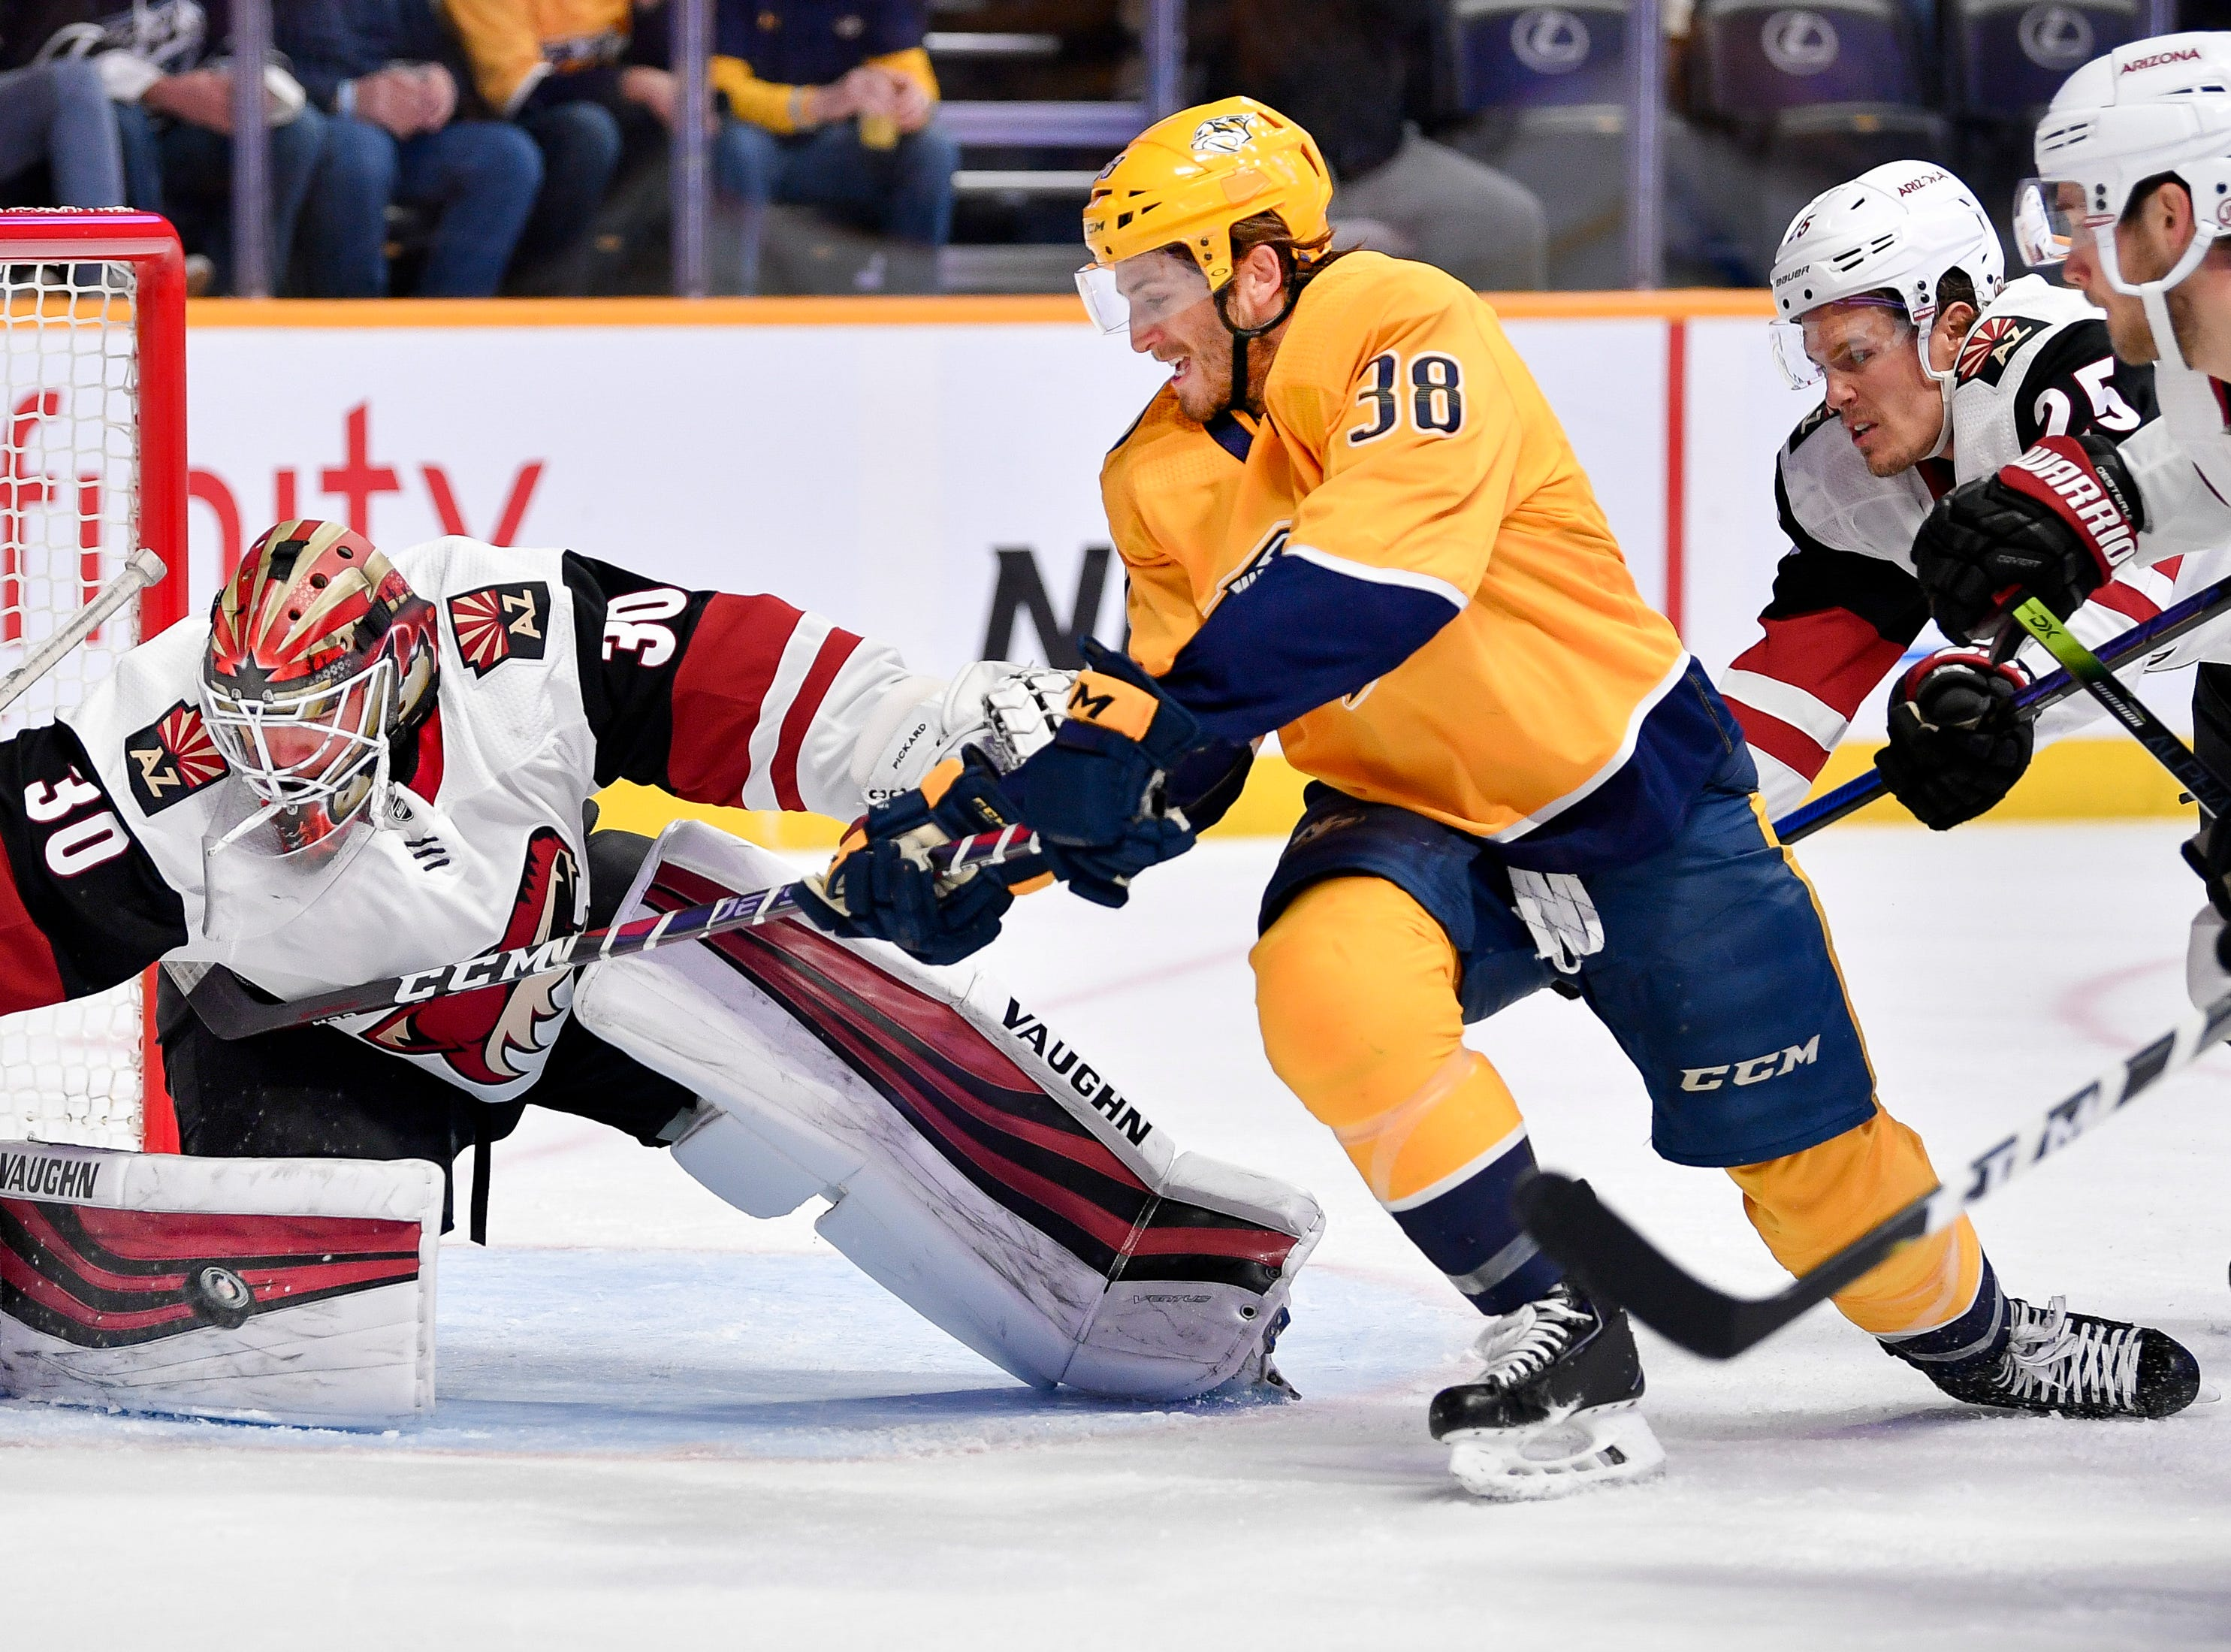 Arizona Coyotes goaltender Calvin Pickard (30) blocks a shot from Nashville Predators right wing Ryan Hartman (38) during the first period at Bridgestone Arena in Nashville, Tenn., Tuesday, Feb. 5, 2019.